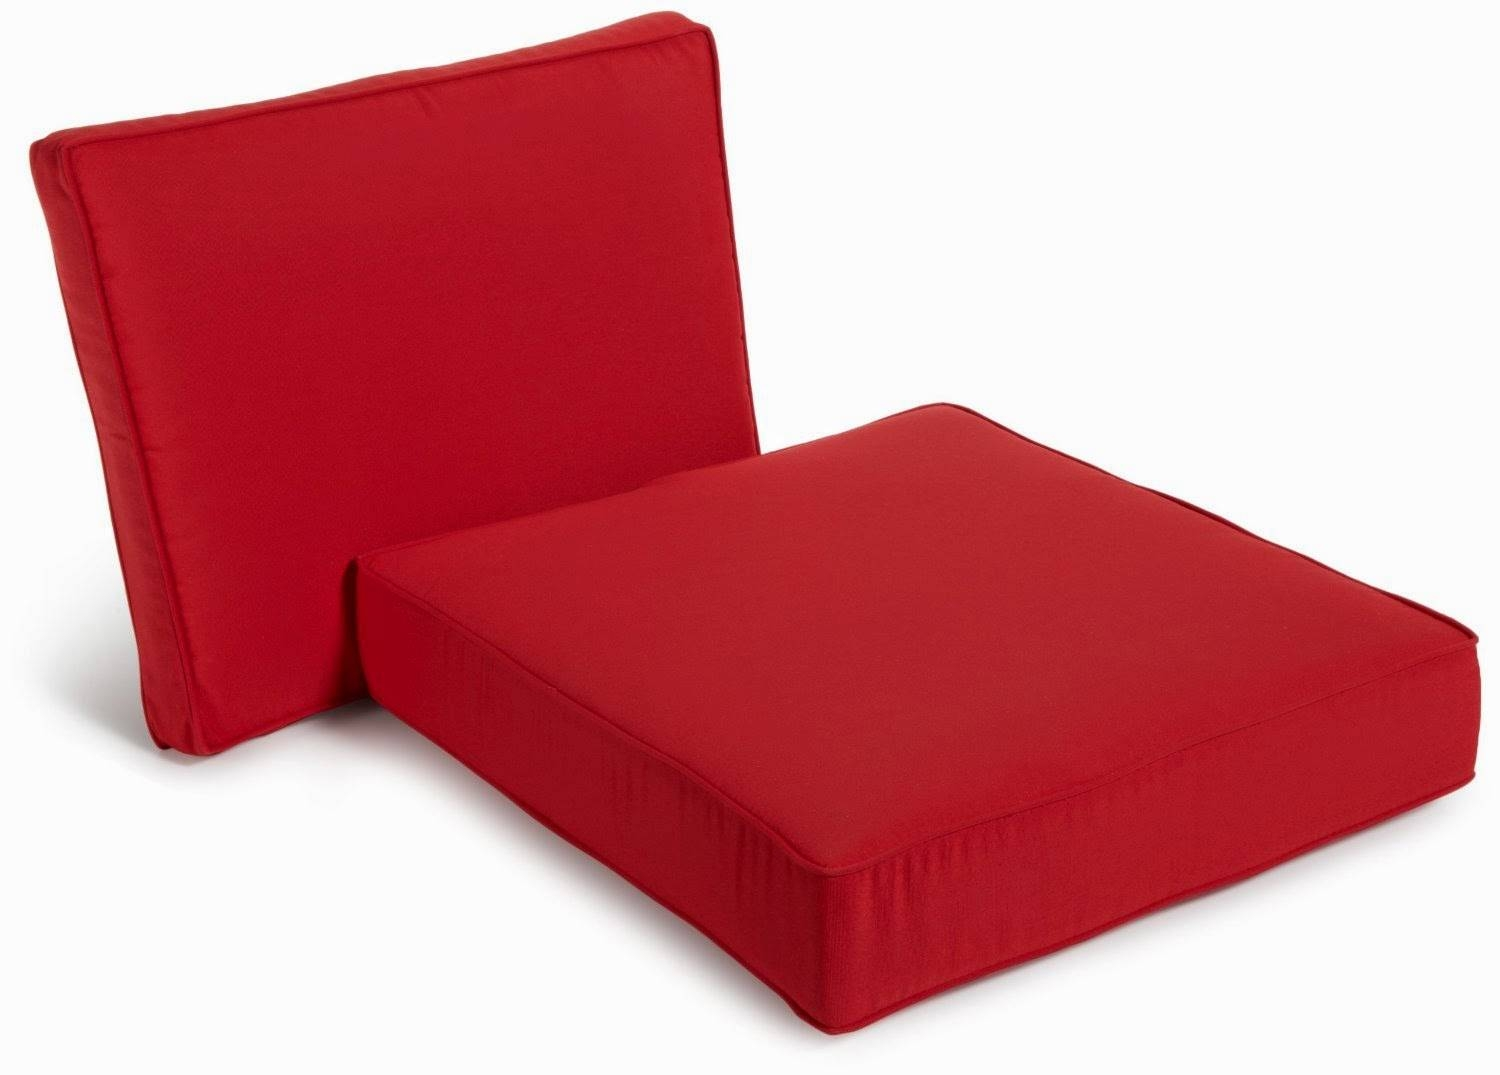 Foam For Couch Cushions Canada | Cushions Decoration pertaining to Deep Cushioned Sofas (Image 11 of 30)